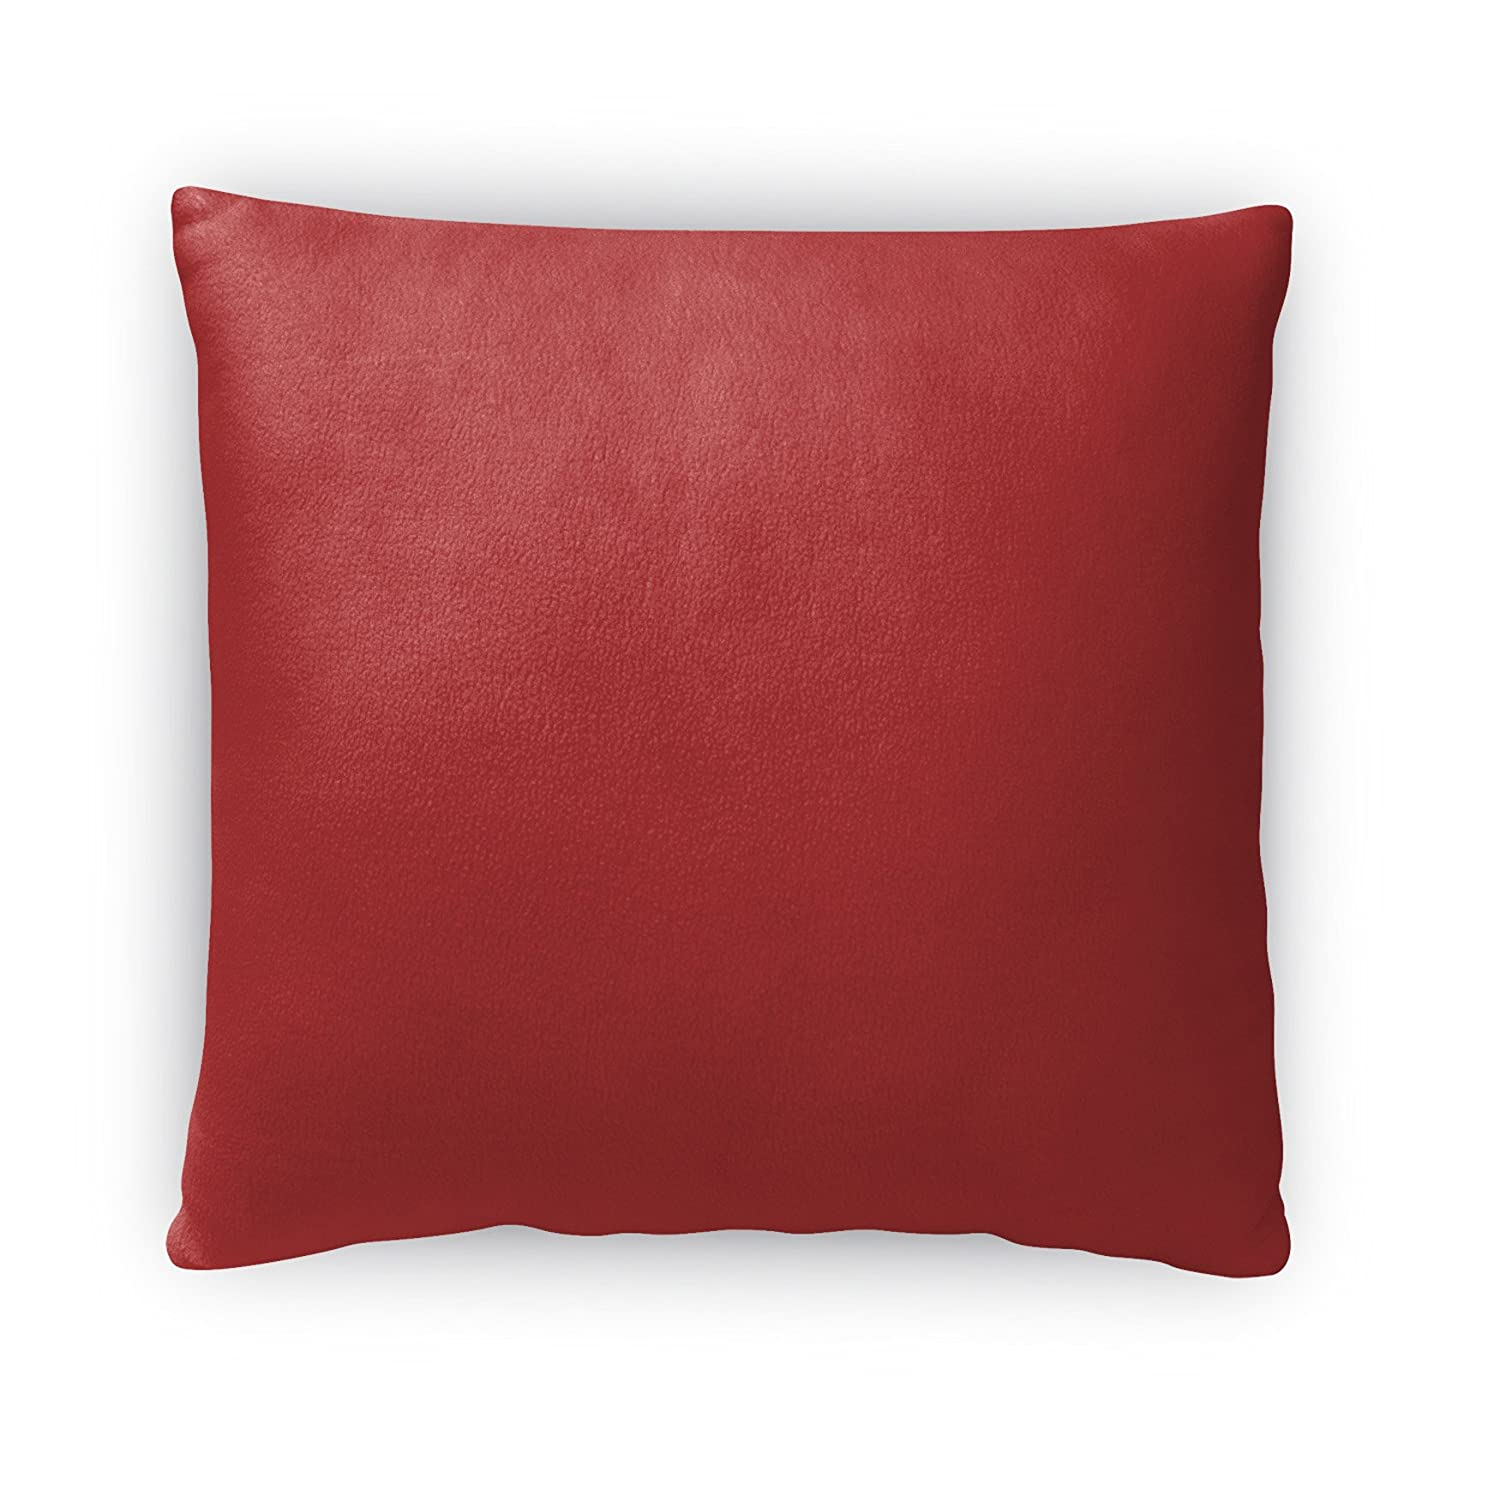 - Red TELAVC8076FBS16 Size: 16X16X4 - KAVKA Designs Fall In Love Red Fleece Throw Pillow,